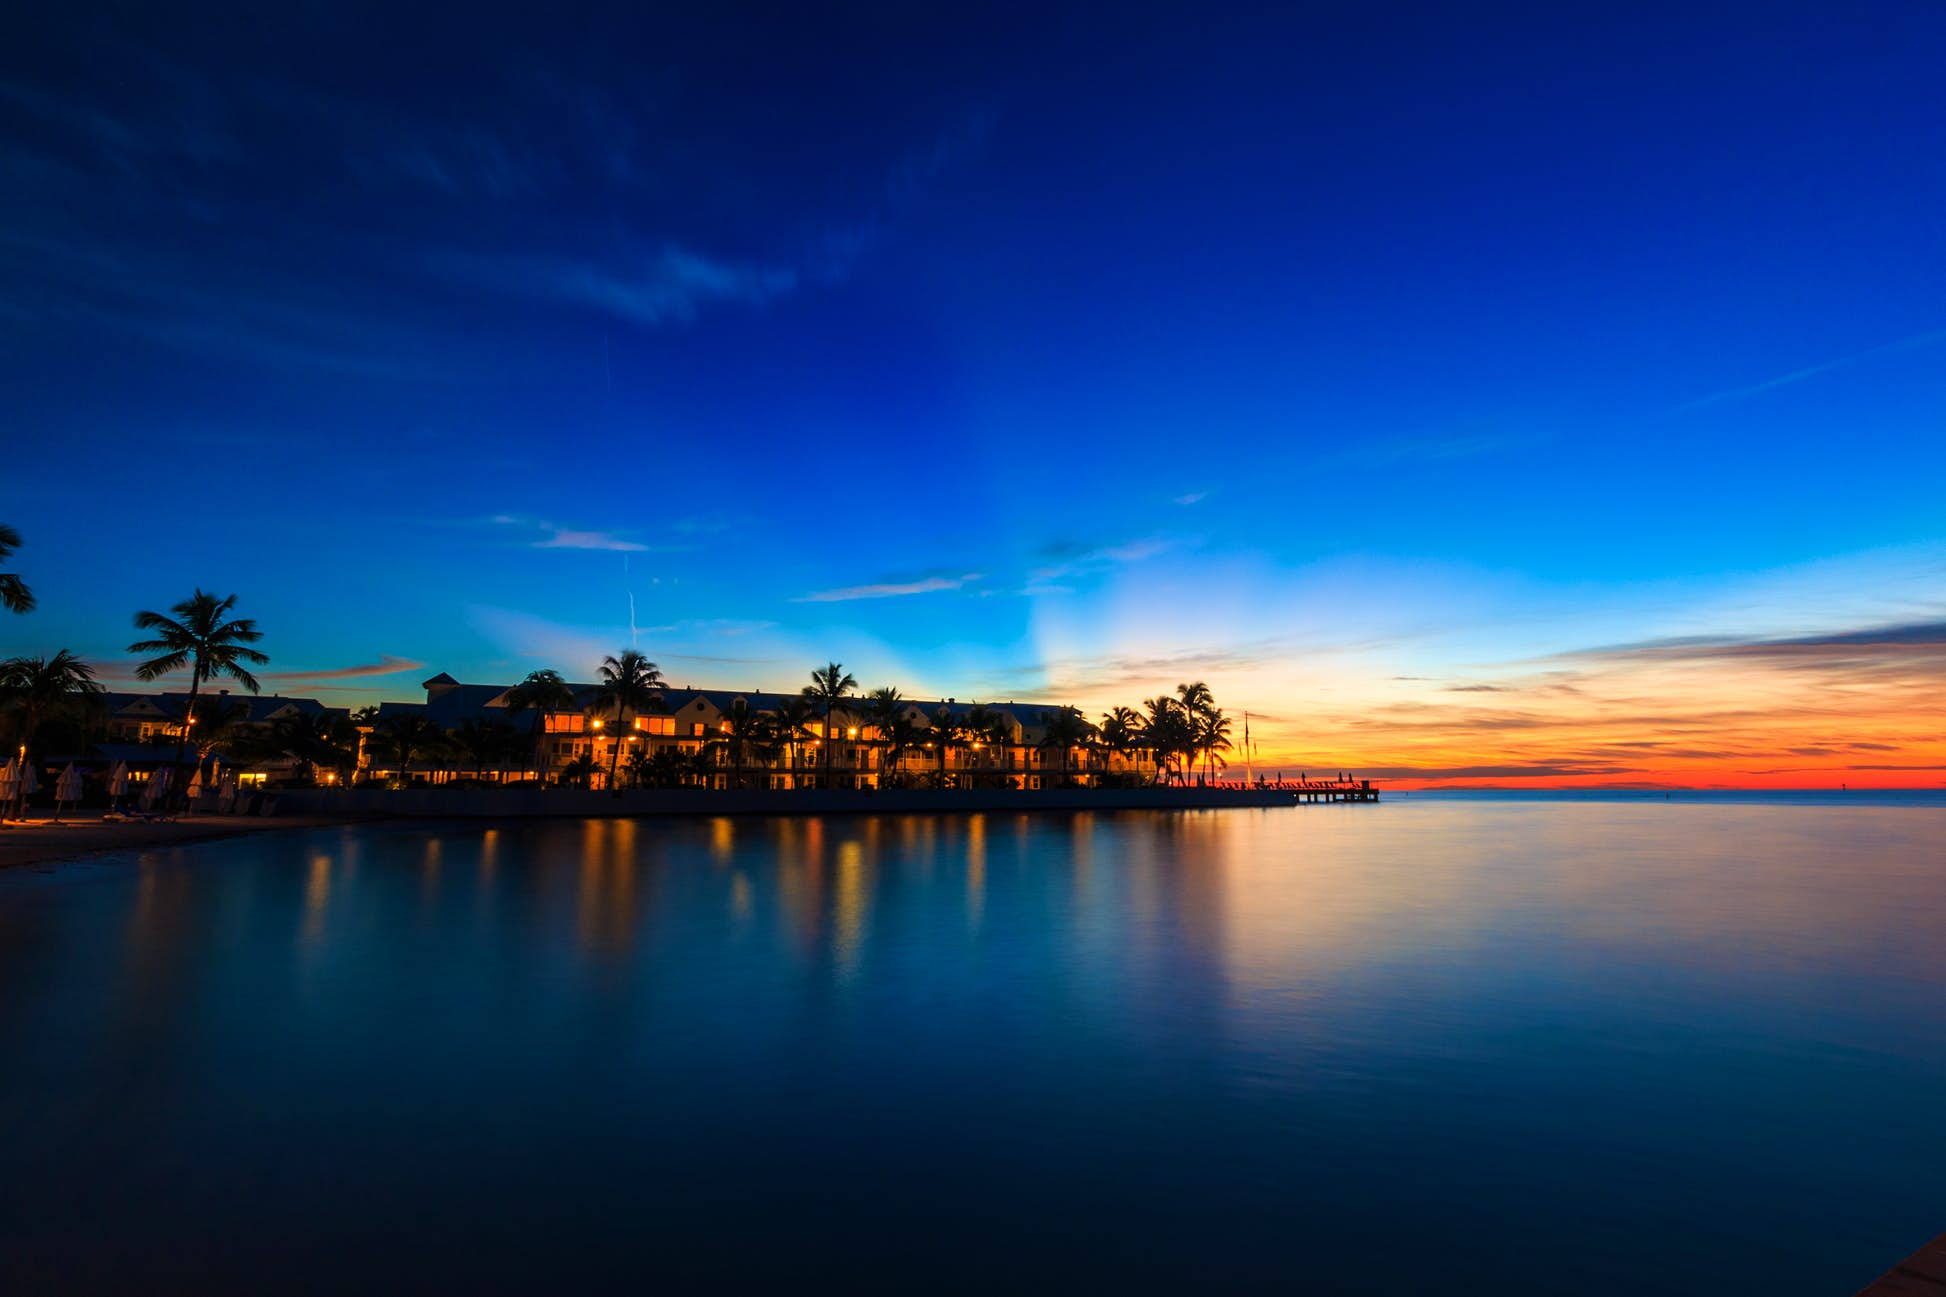 Many hotels have reopened in the Keys © Renato Pessanha / 500px